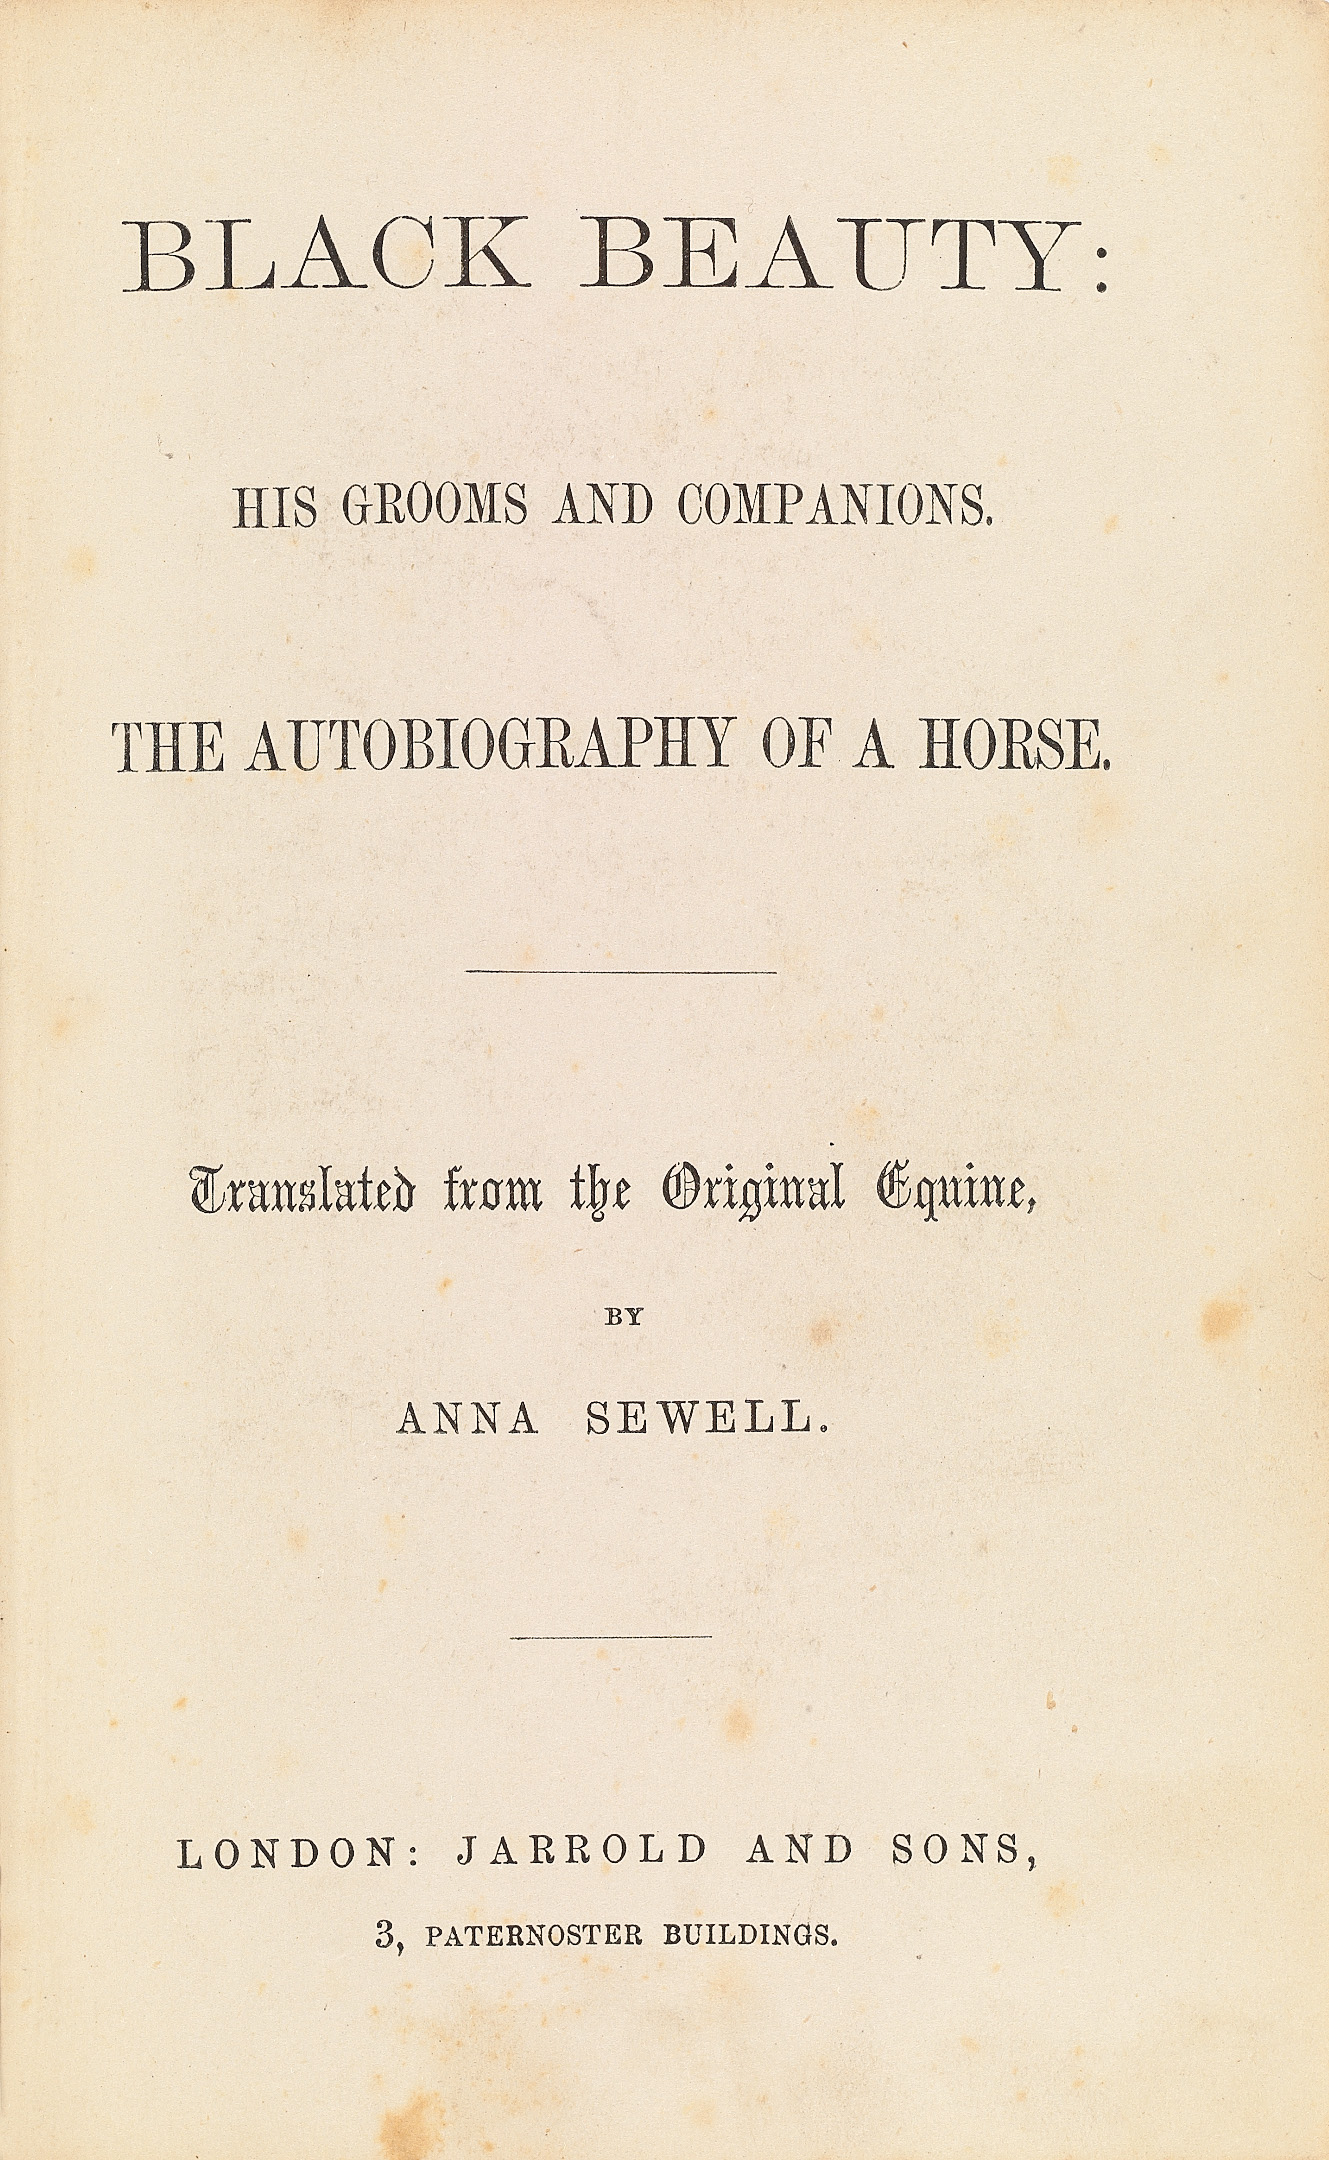 SEWELL, Anna (1820-1878). Black Beauty: His Grooms and Companions. The Autobiography of a Horse. London: Jarrold and Sons, [1877]. 8º (165 x 134mm). Wood-engraved frontispiece after C. Hewitt. 8-pages of advertisements at rear. (Light spotting, occasional finger soiling.) Original green cloth, front cover with rustic and floreated border in black and gilt enclosing the title in expanding black letters and horse's head stamped in black with reins and bridle in gilt, the horse's head facing right, similar spine decoration (extremities lightly rubbed, a few light scuff marks to front cover, upper joints neatly repaired, lacking brown glazed front free endpaper). PRESENTATION COPY, inscribed to: 'Mary and Catherine Sewell from their affectionate cousin the author Christmas 1877'.